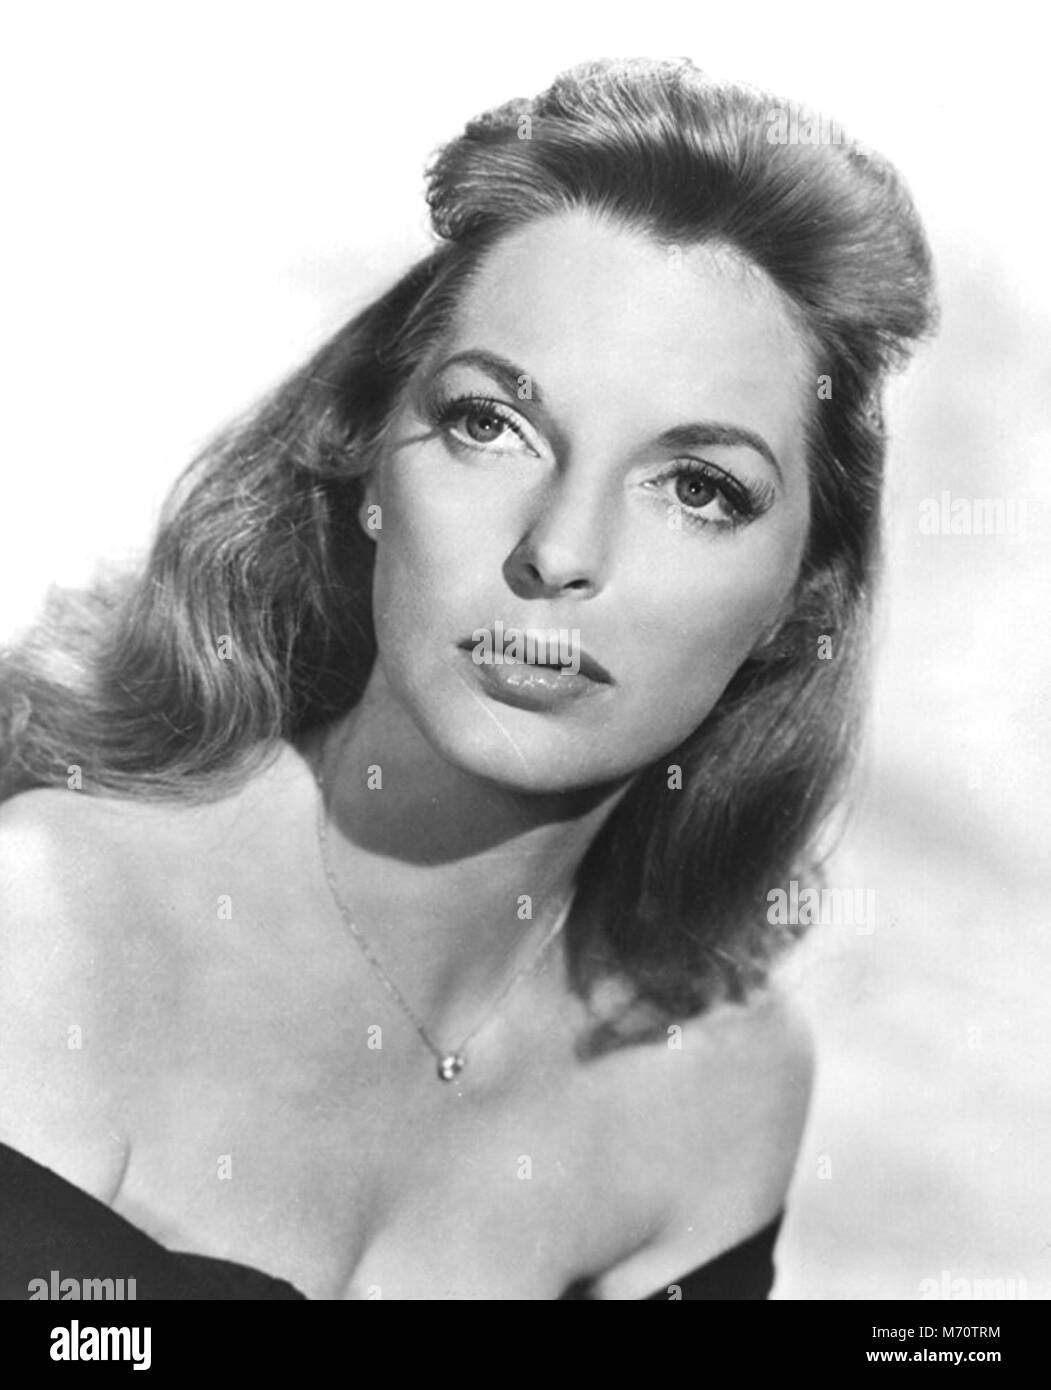 A QUESTION OF ADULTERY 1958 Eros Films production with Julie London - Stock Image